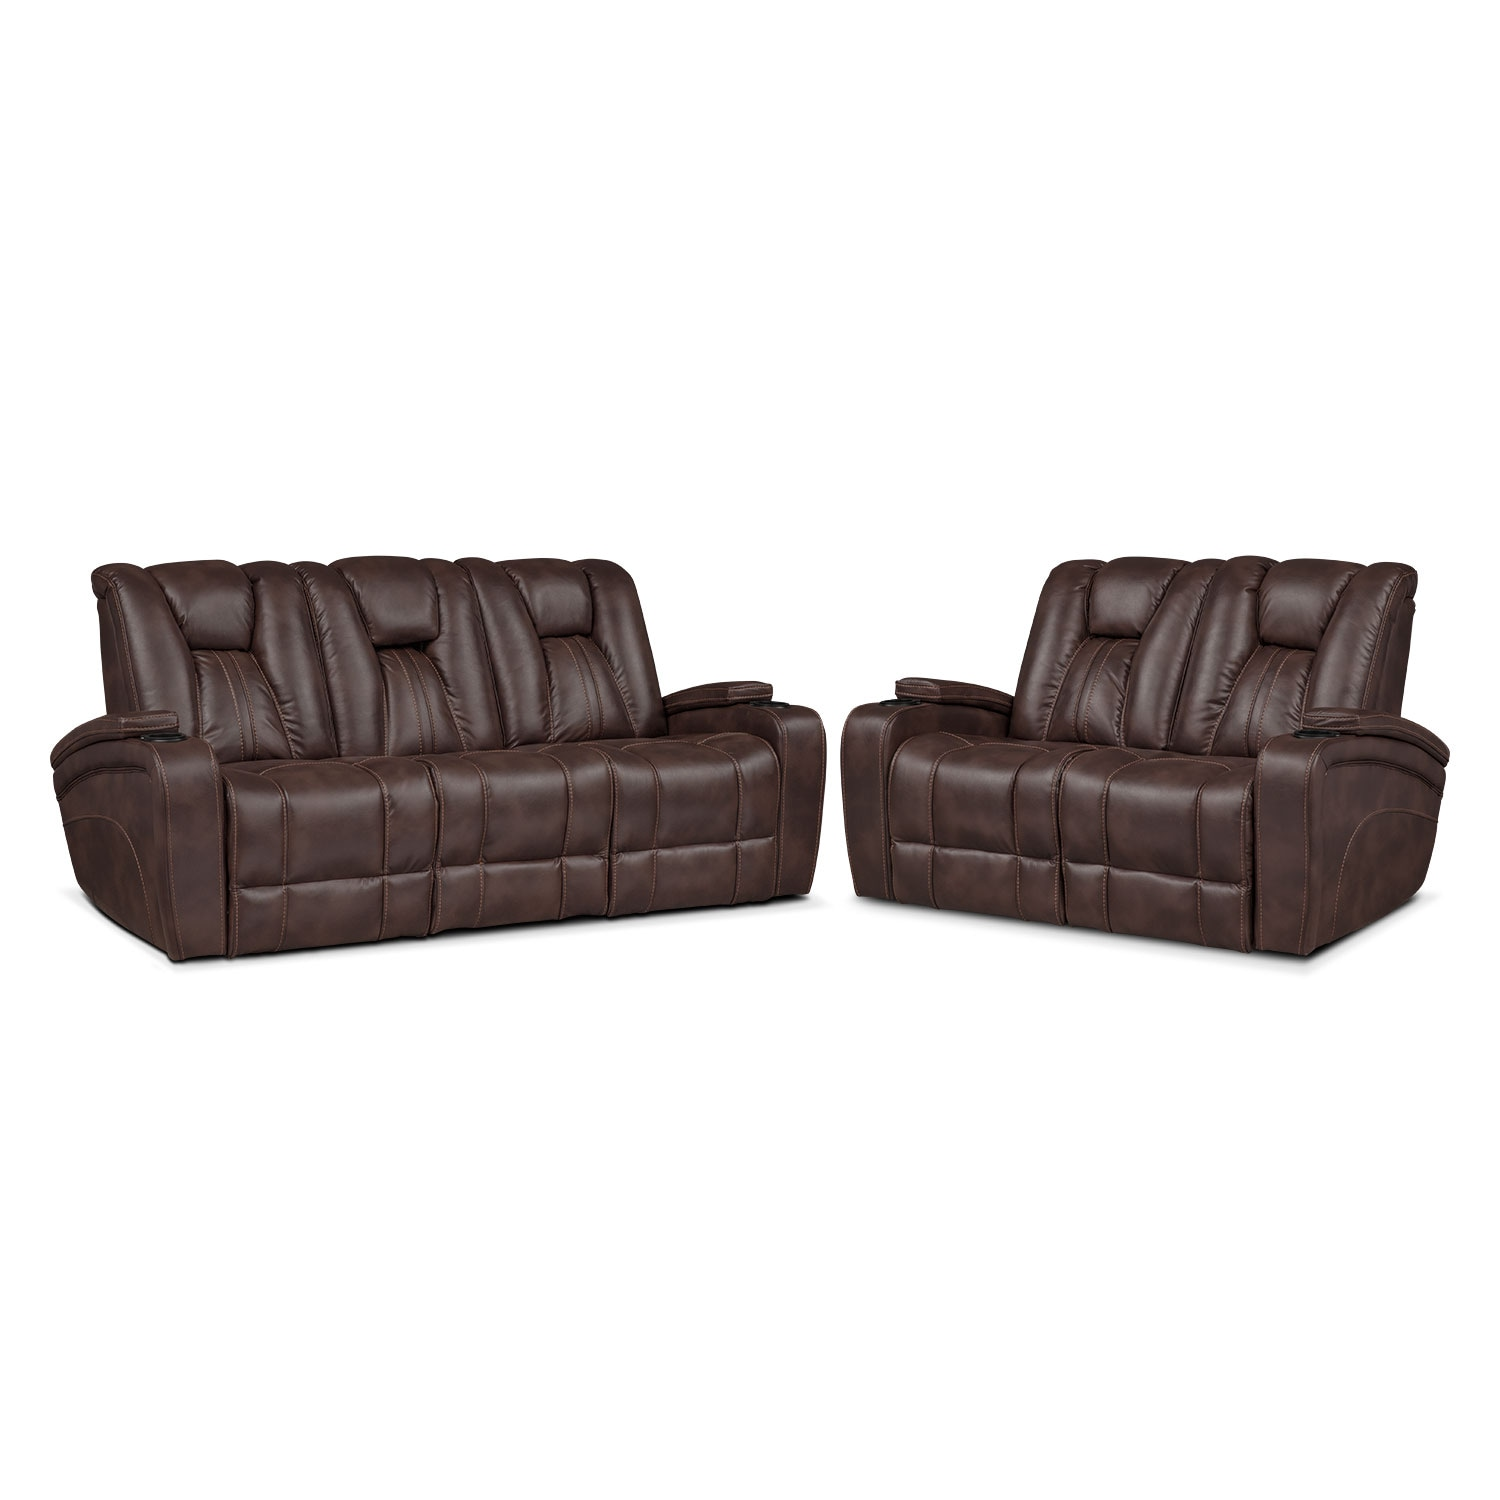 Power Reclining Sofa And Loveseat Sets Power Reclining